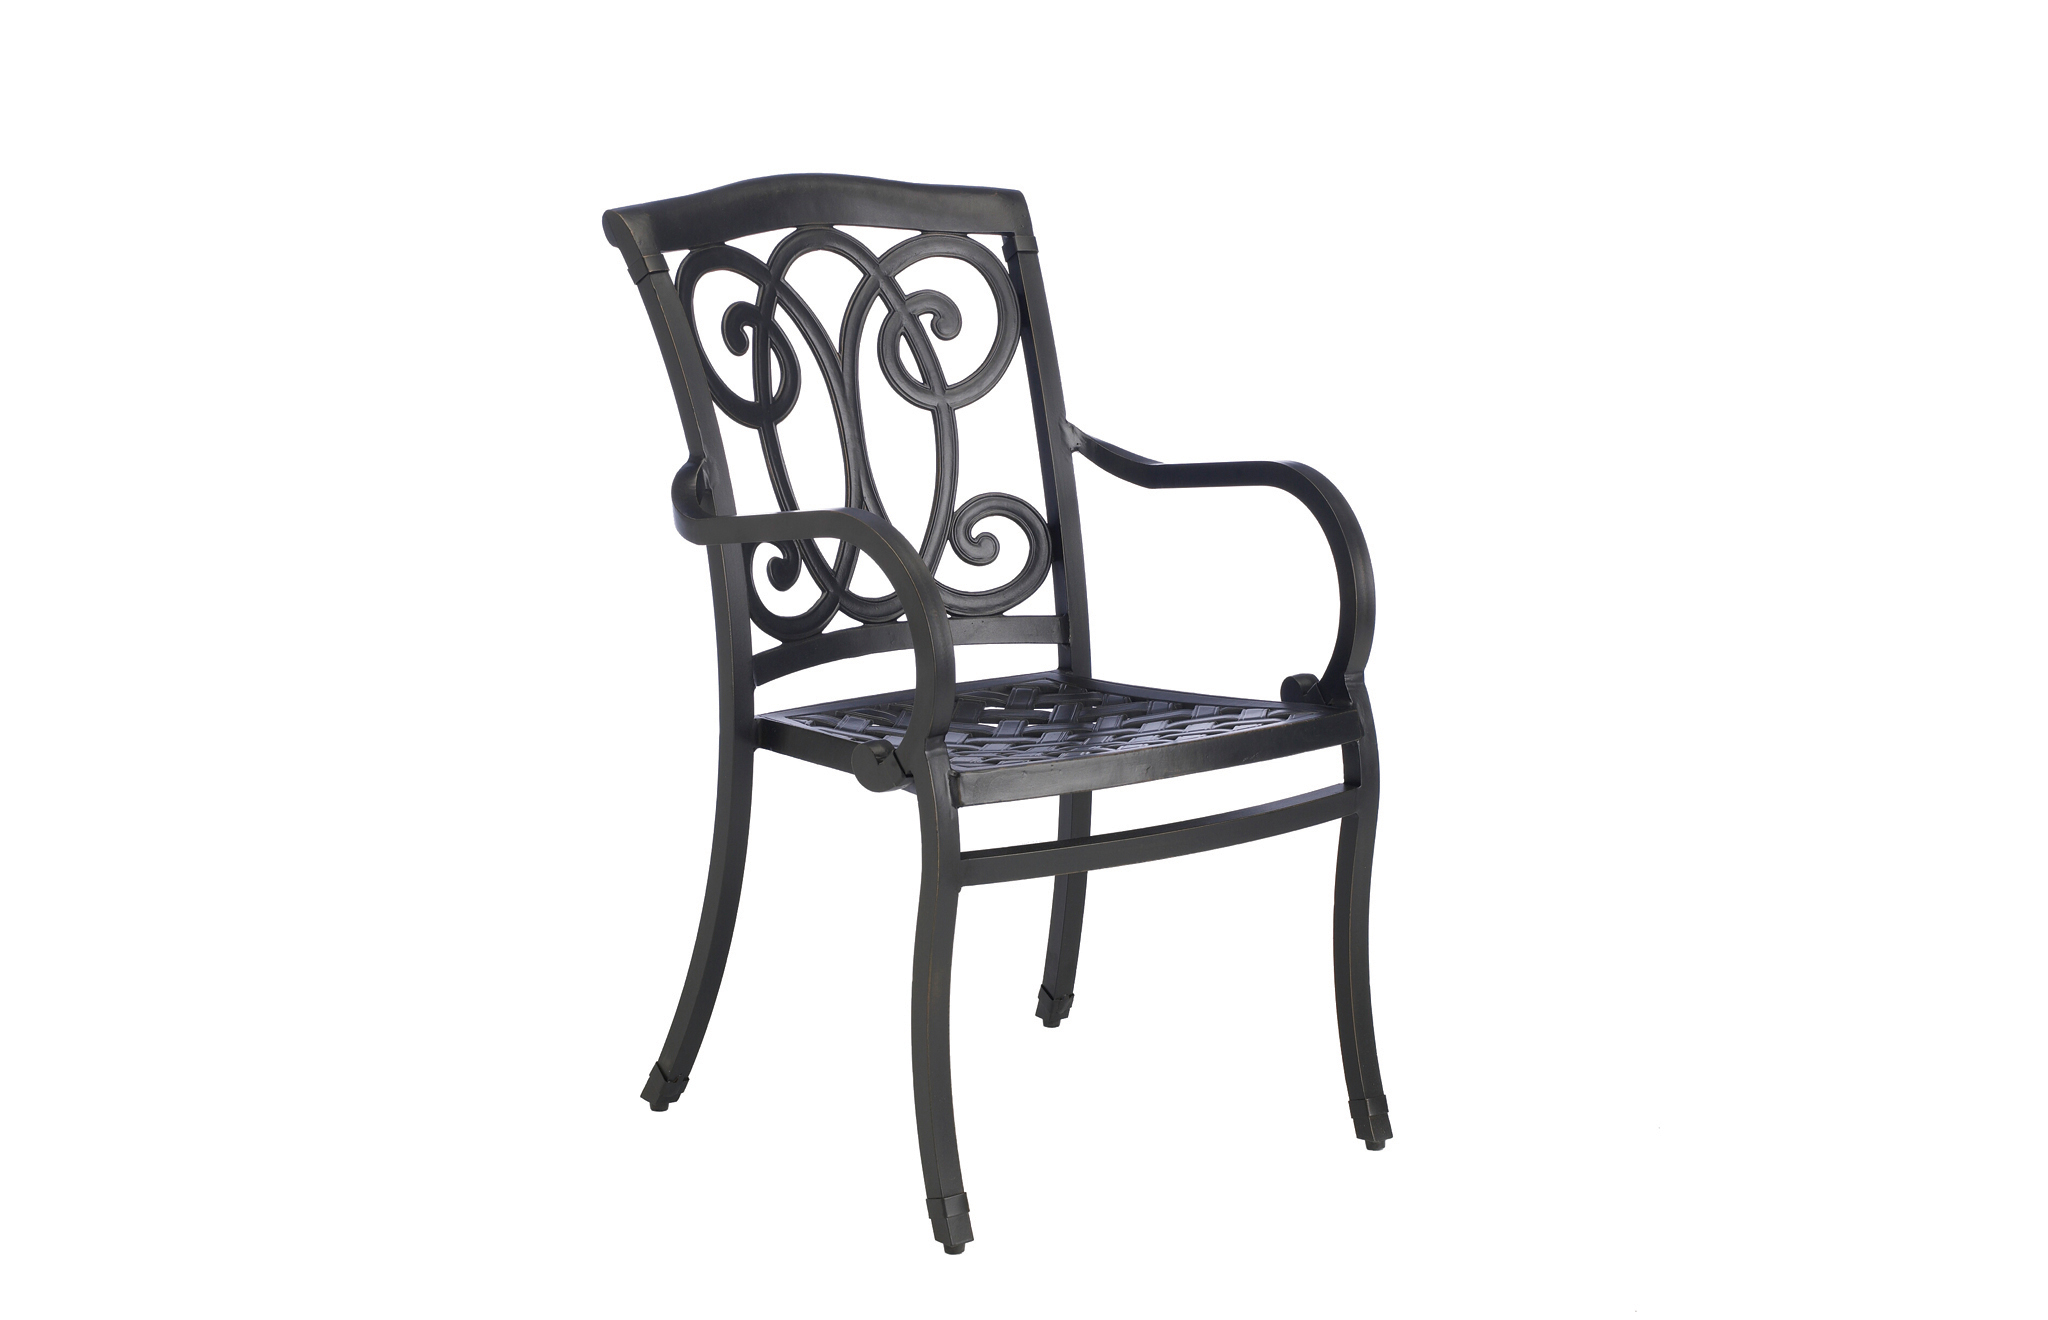 Wrought Iron Arm Chairs ~ Origin of the perfect picnic from wrought iron patio